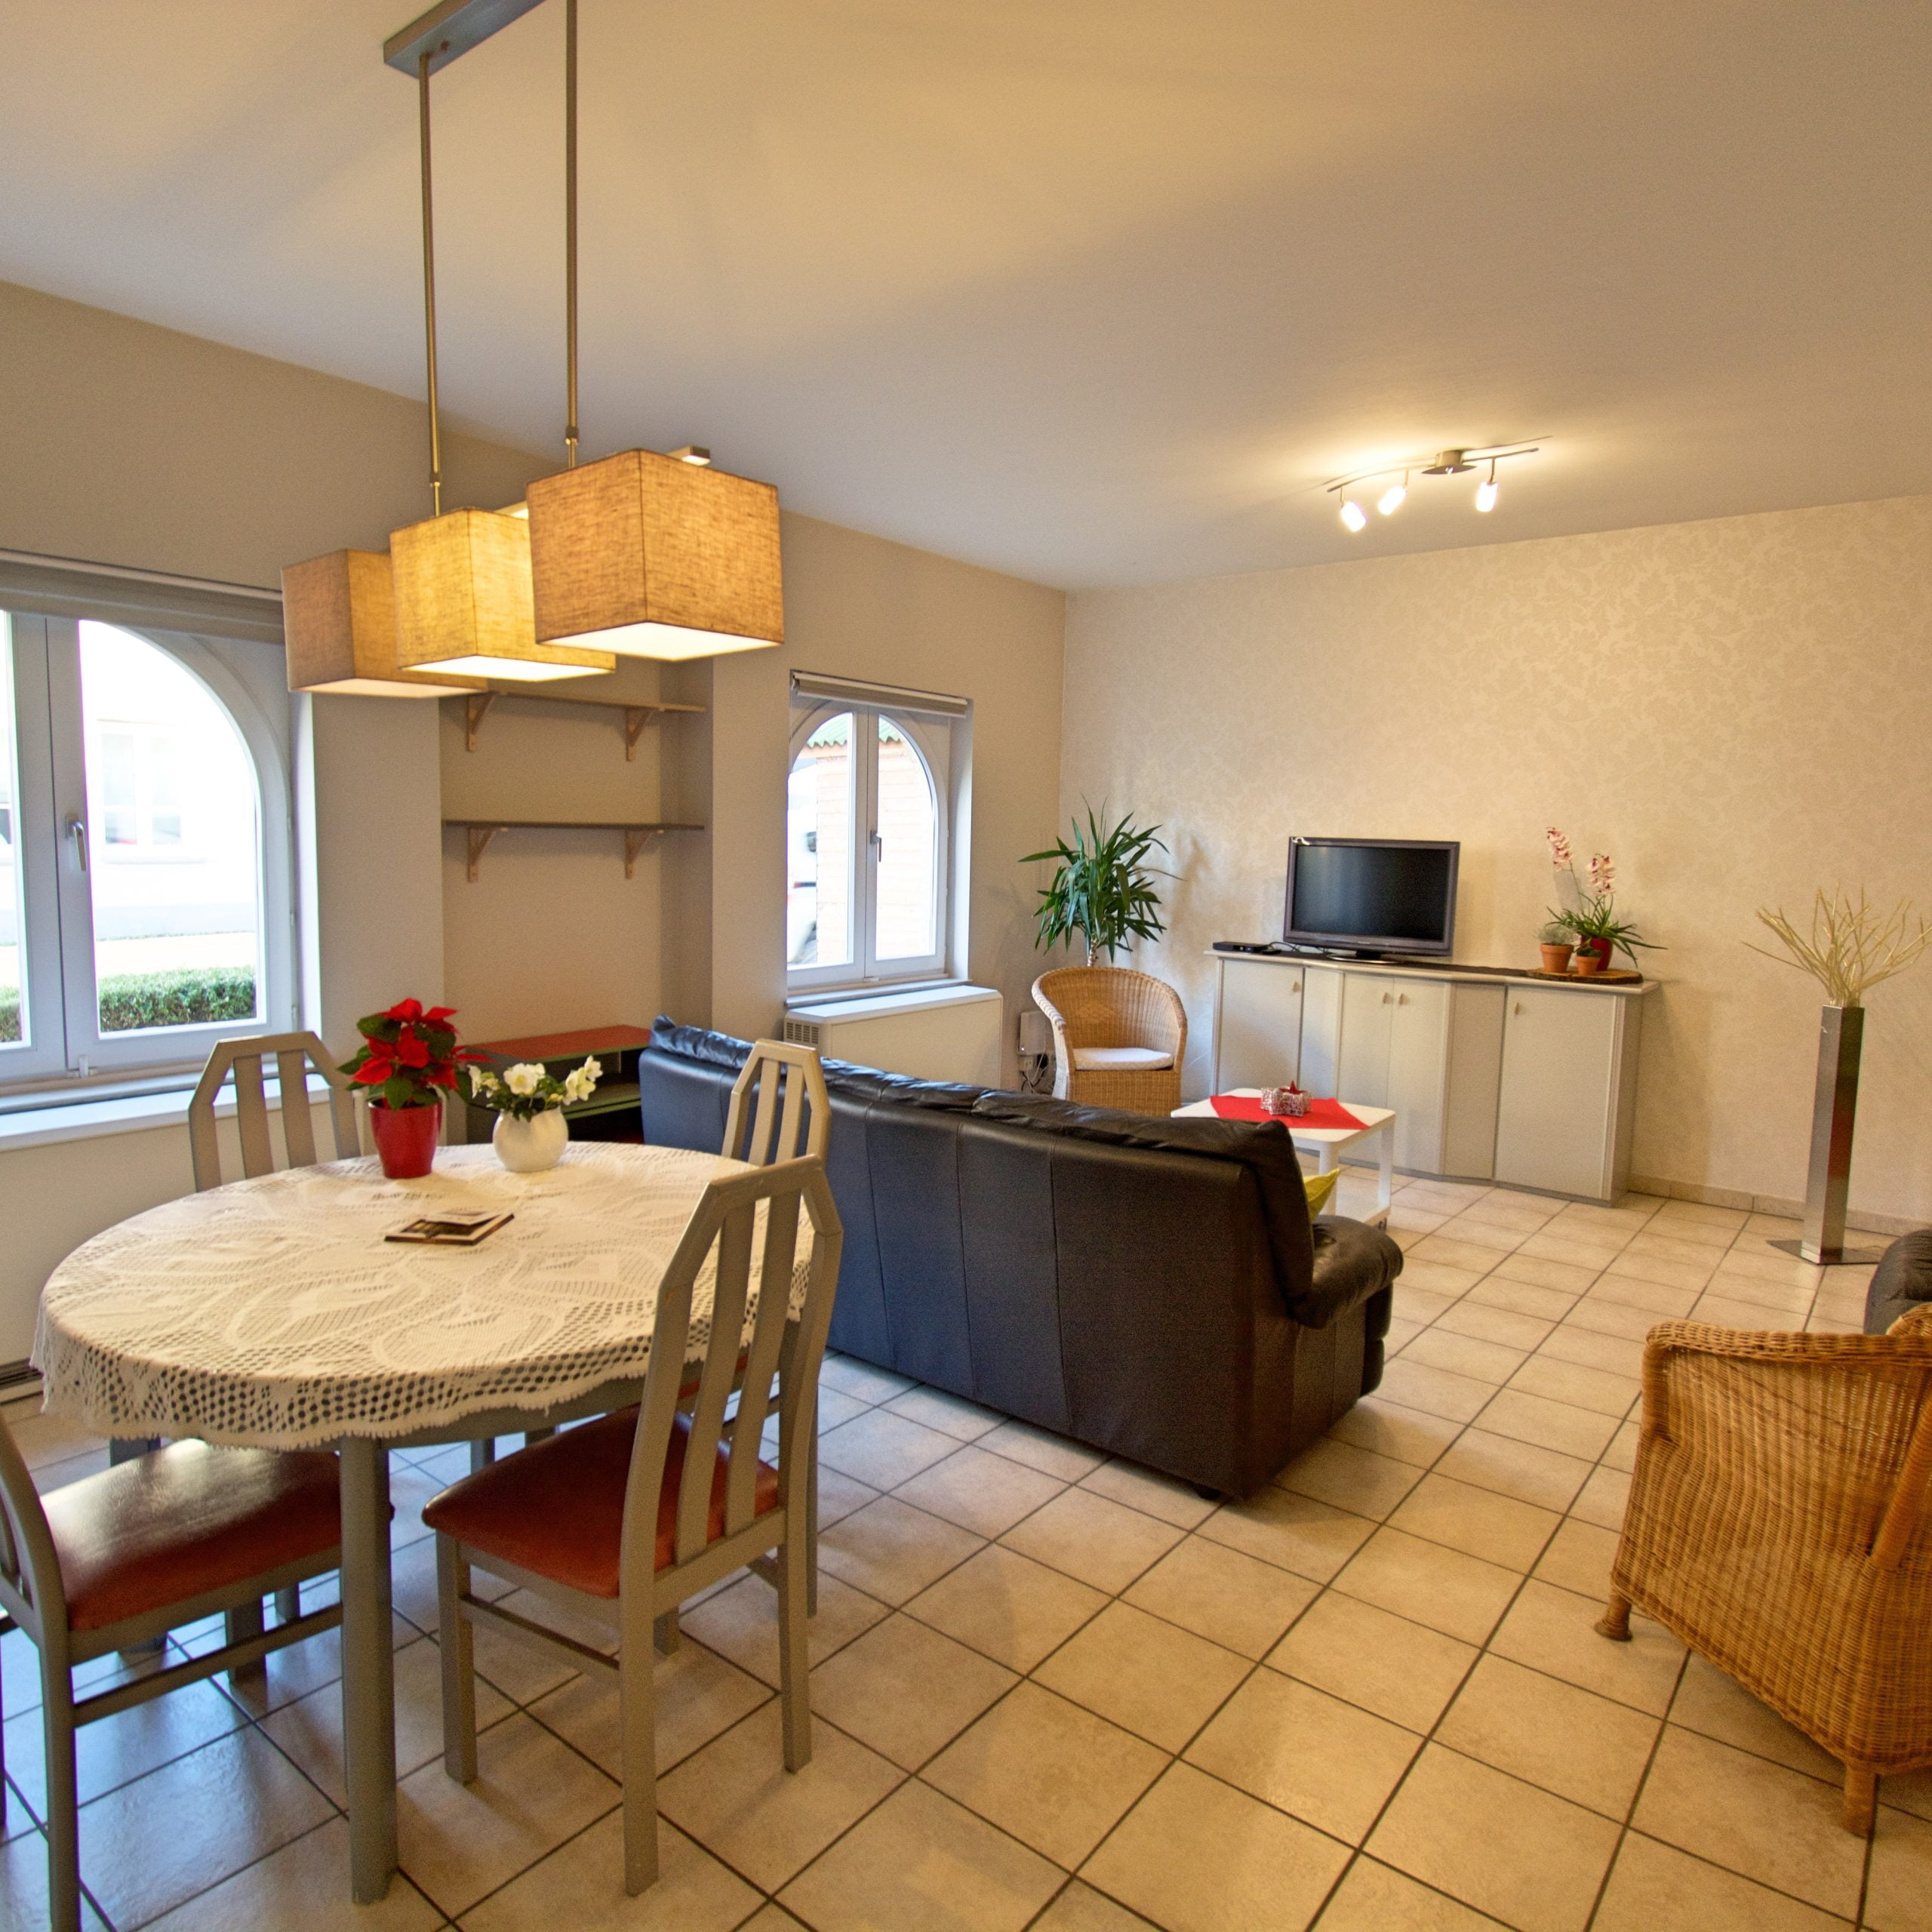 Merendree - Expat apartment near Ghent